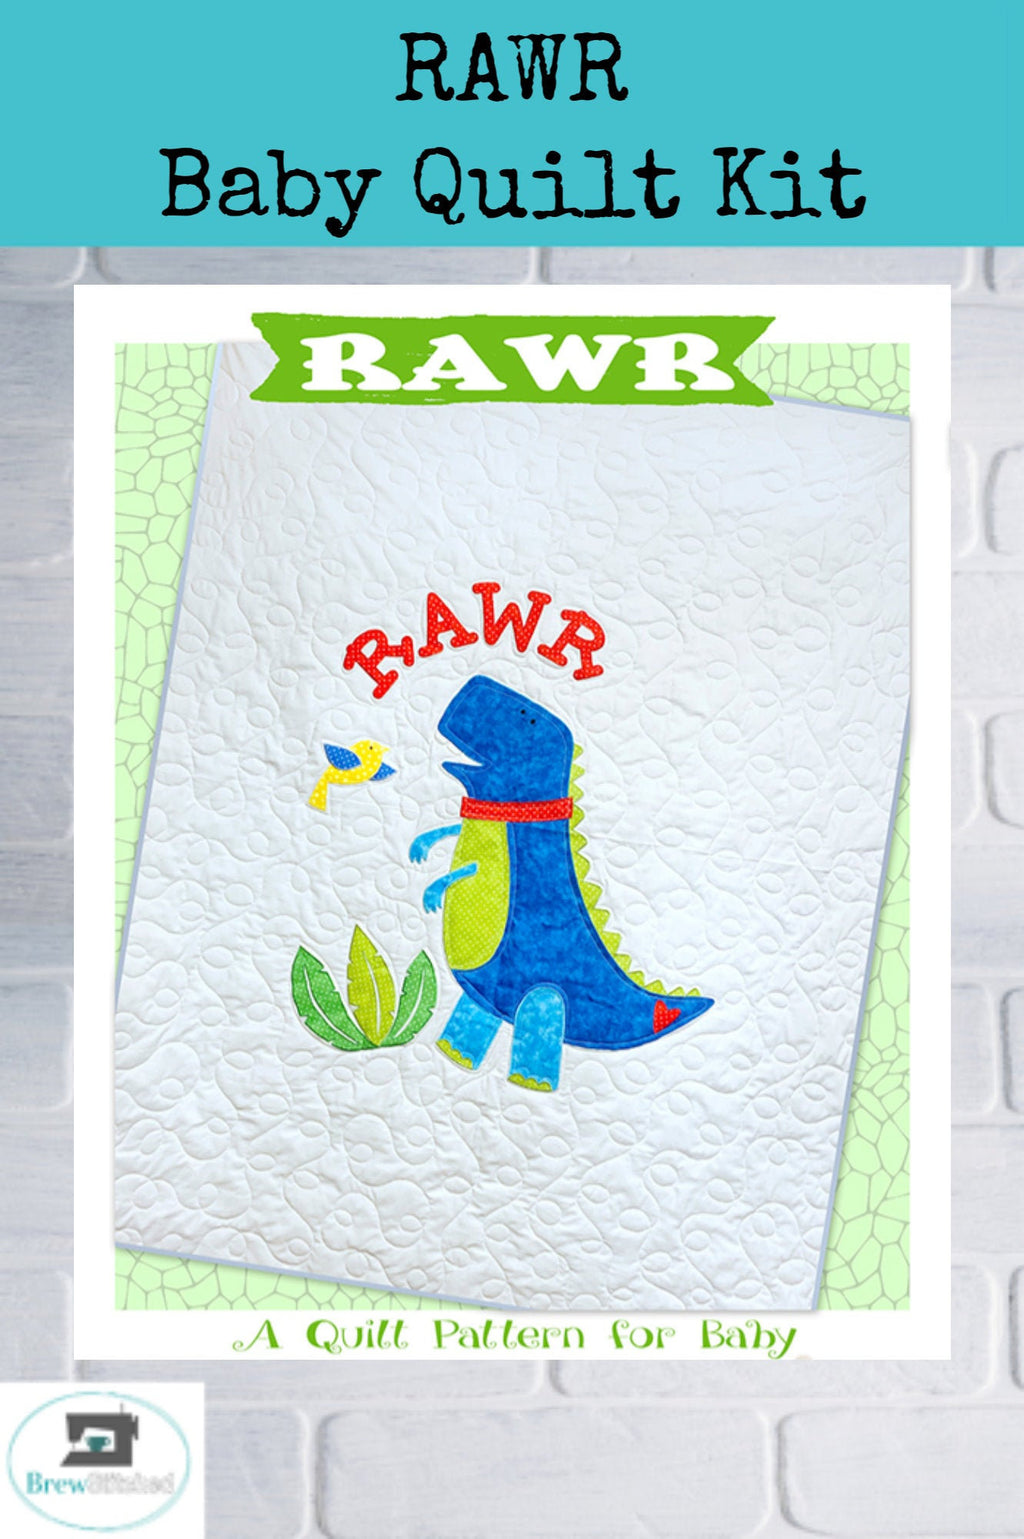 RAWR Dino Applique Baby Quilt Kit - brewstitched.com